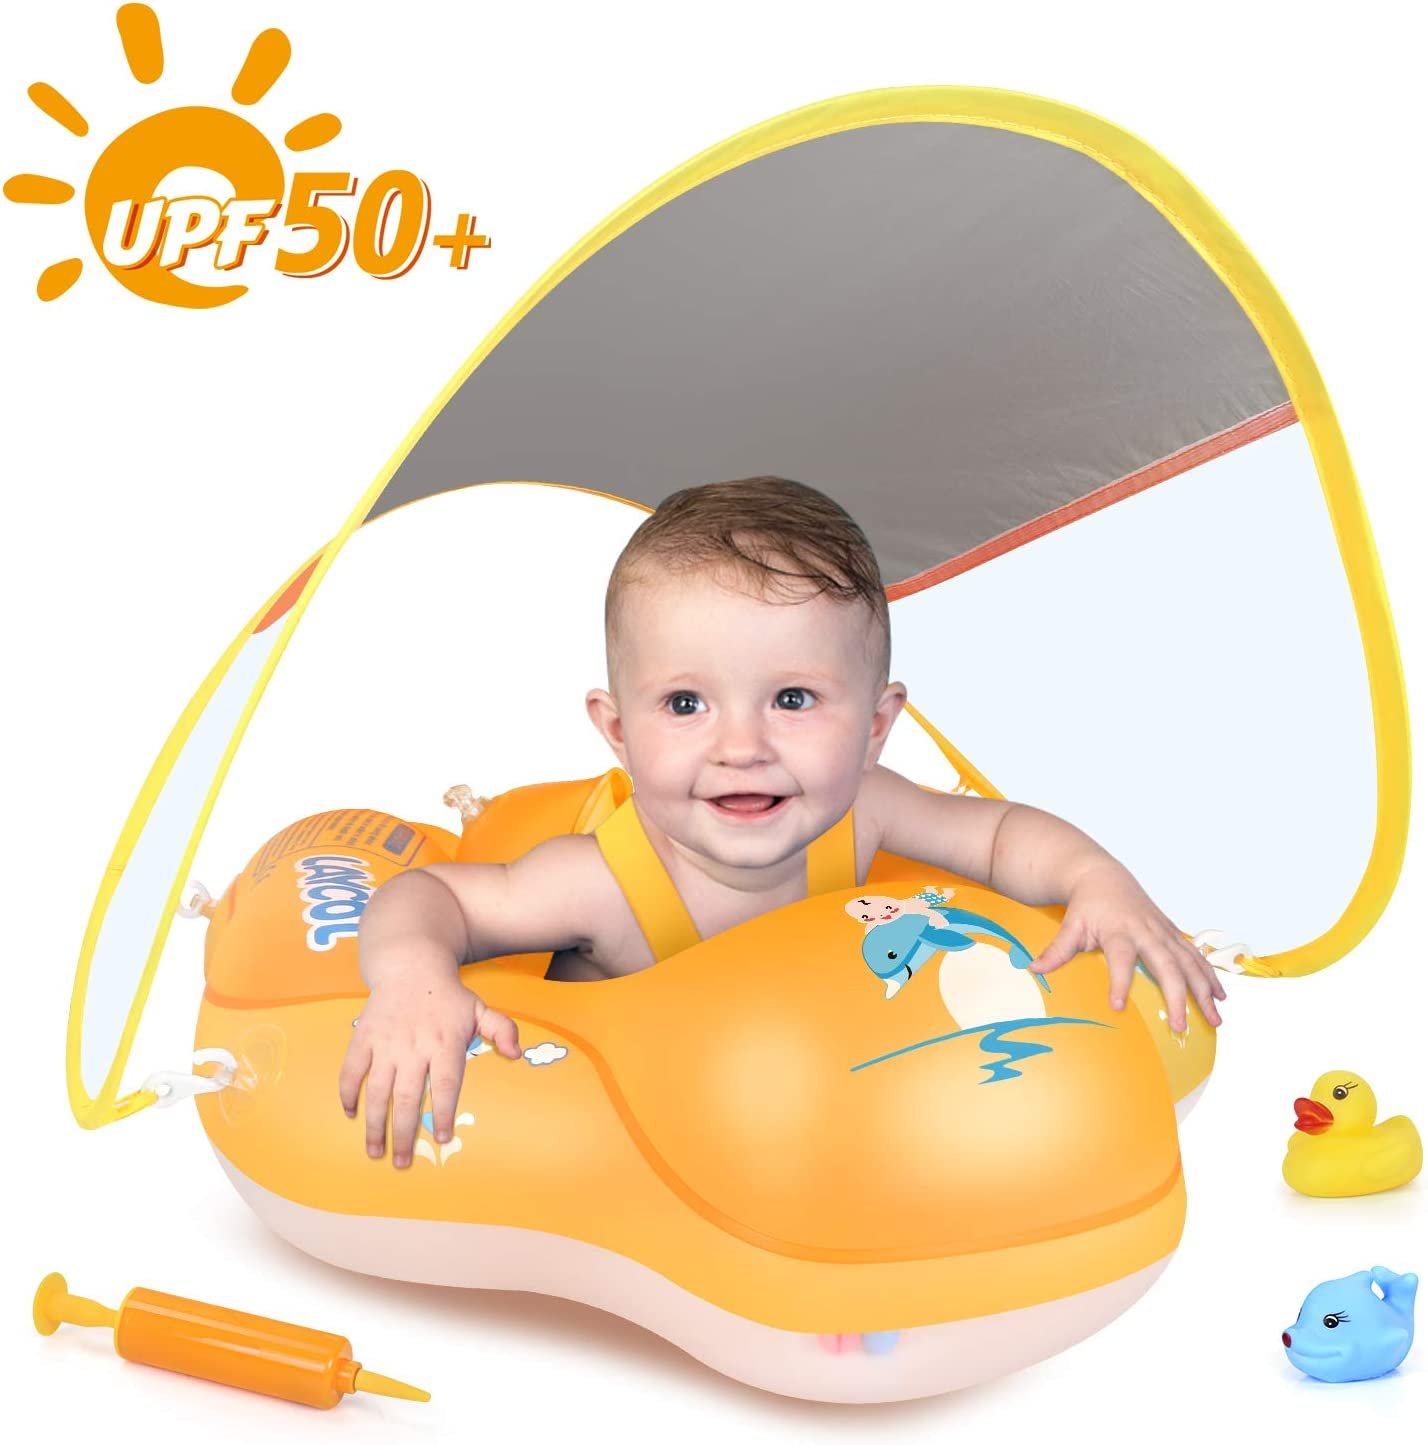 LAYCOL Baby Swimming Float Inflatable Baby Pool Float Ring Newest with Sun Protection Canopy,add Tail no flip Over for Age of 3-36 Months /…